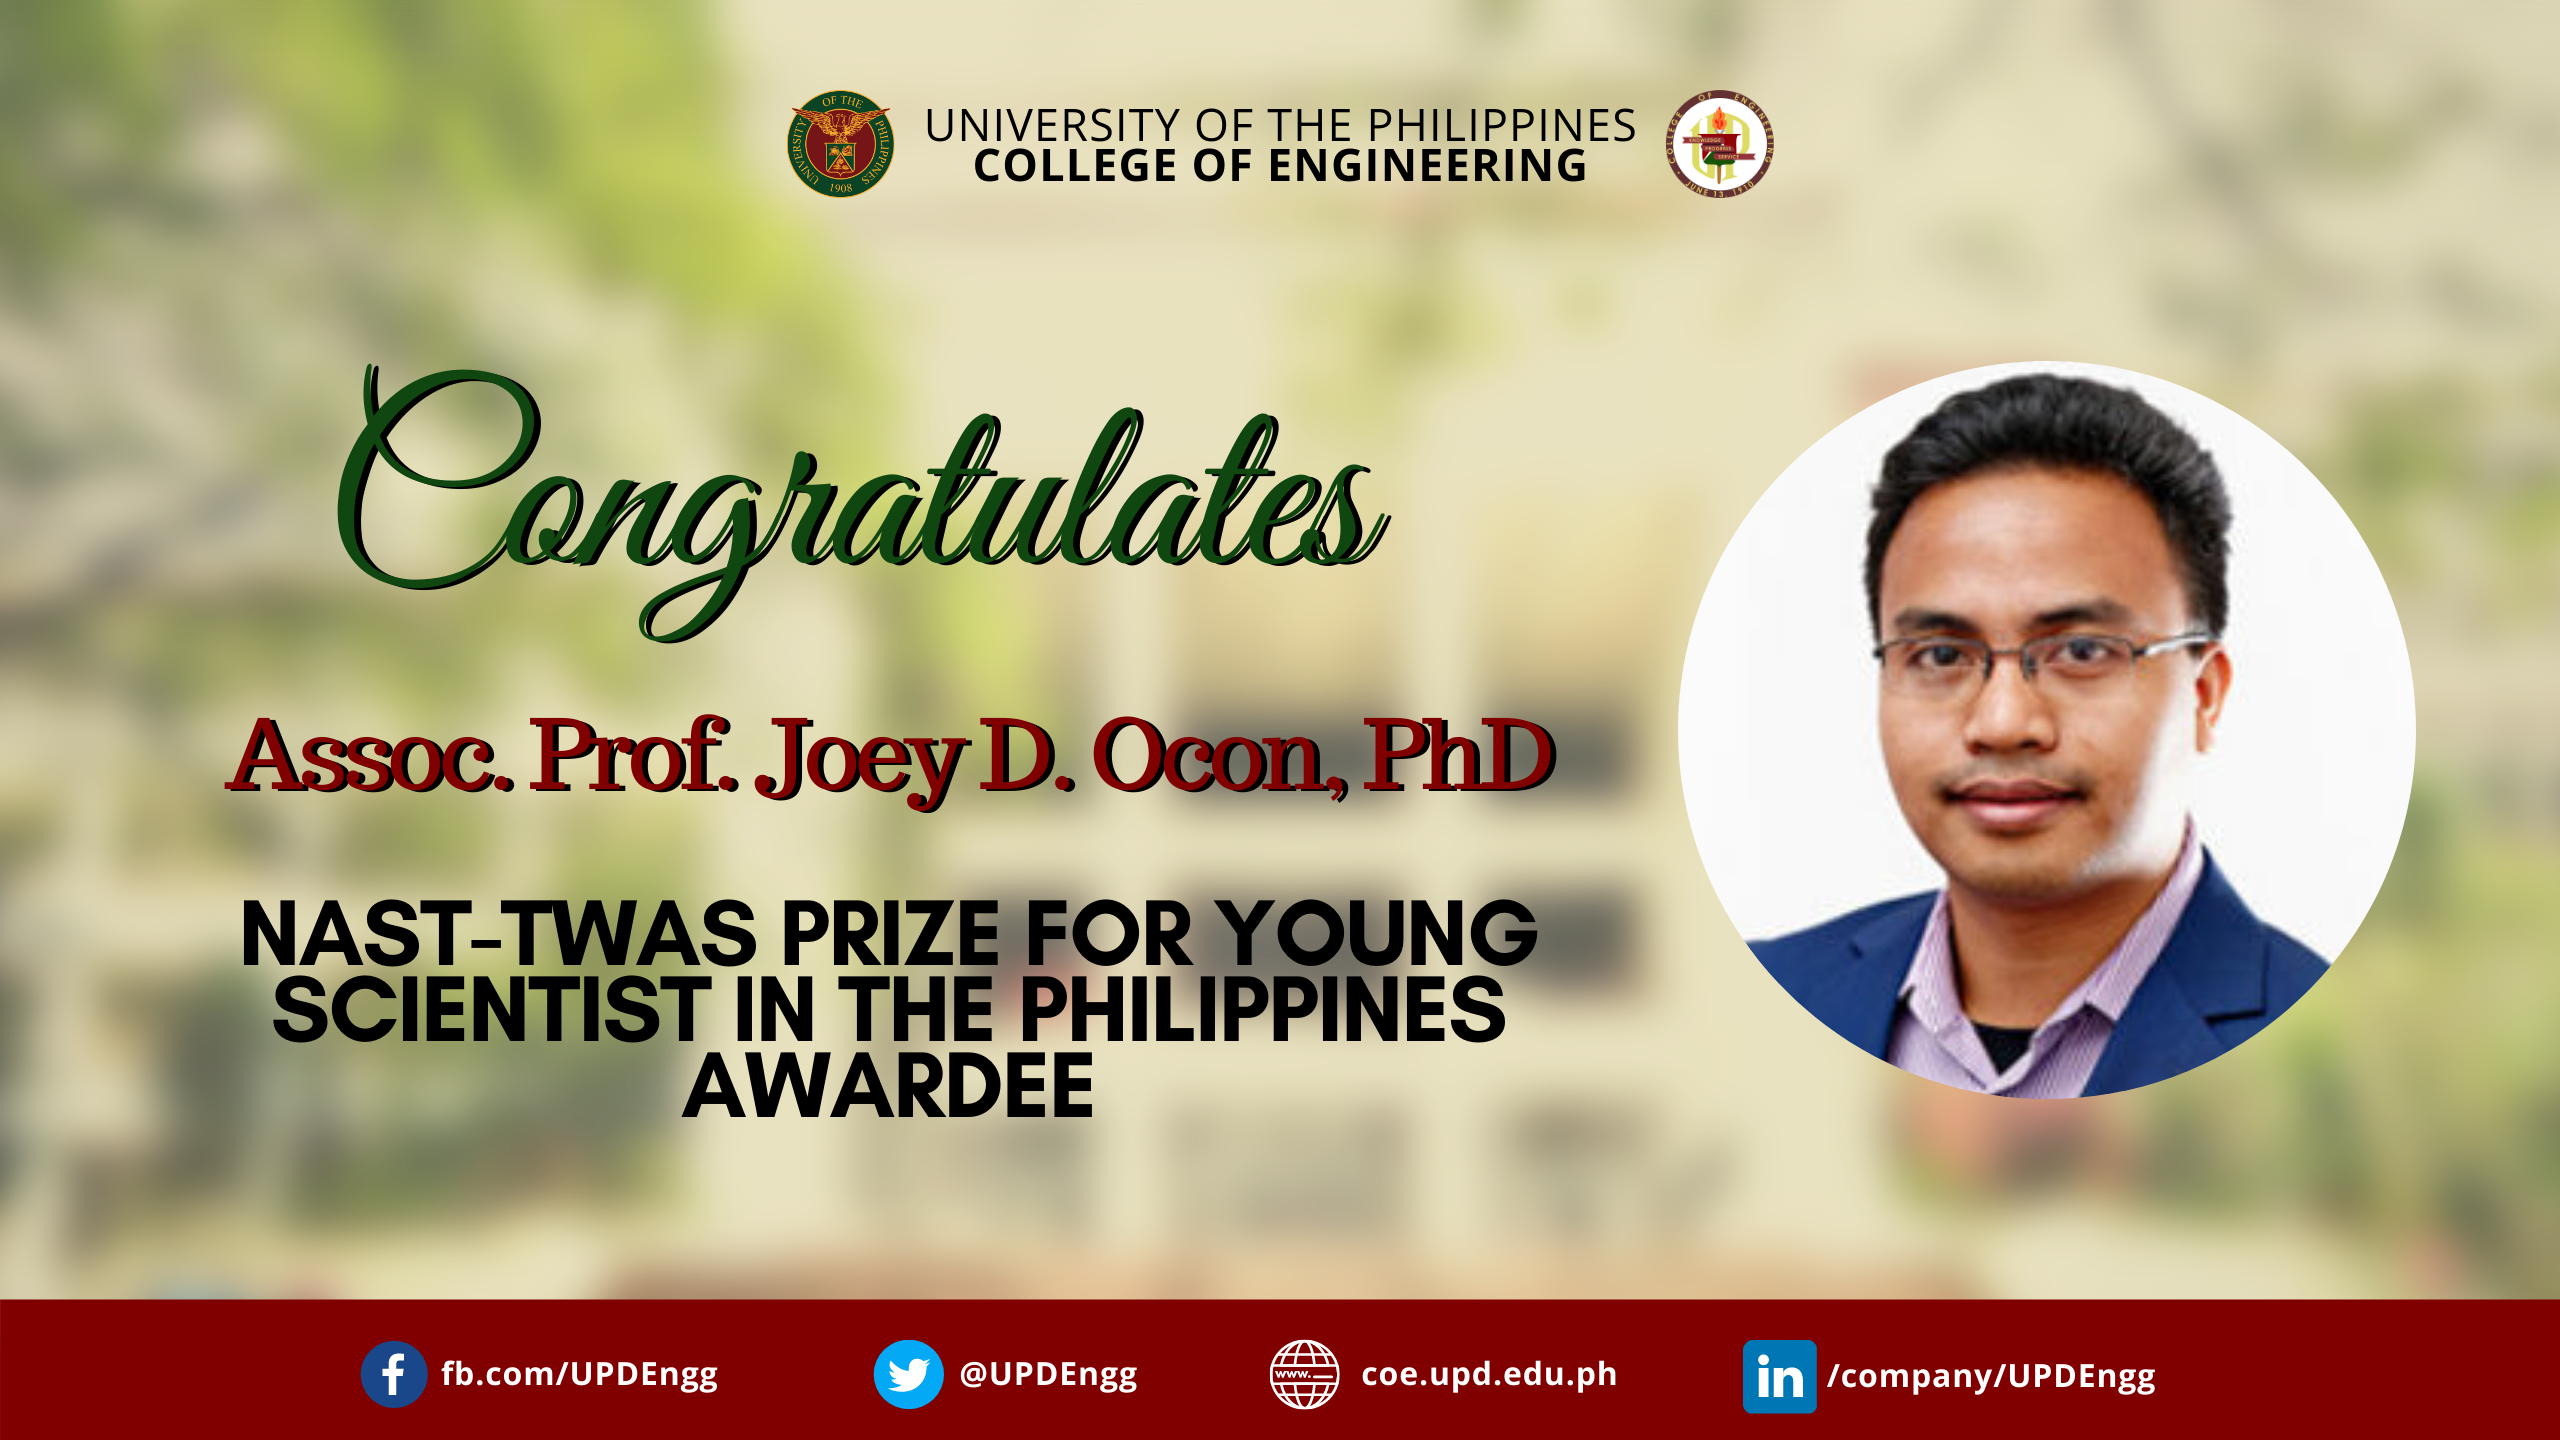 NAST-TWAS Prize for Young Scientist in the Philippines – Dr. Joey D. Ocon